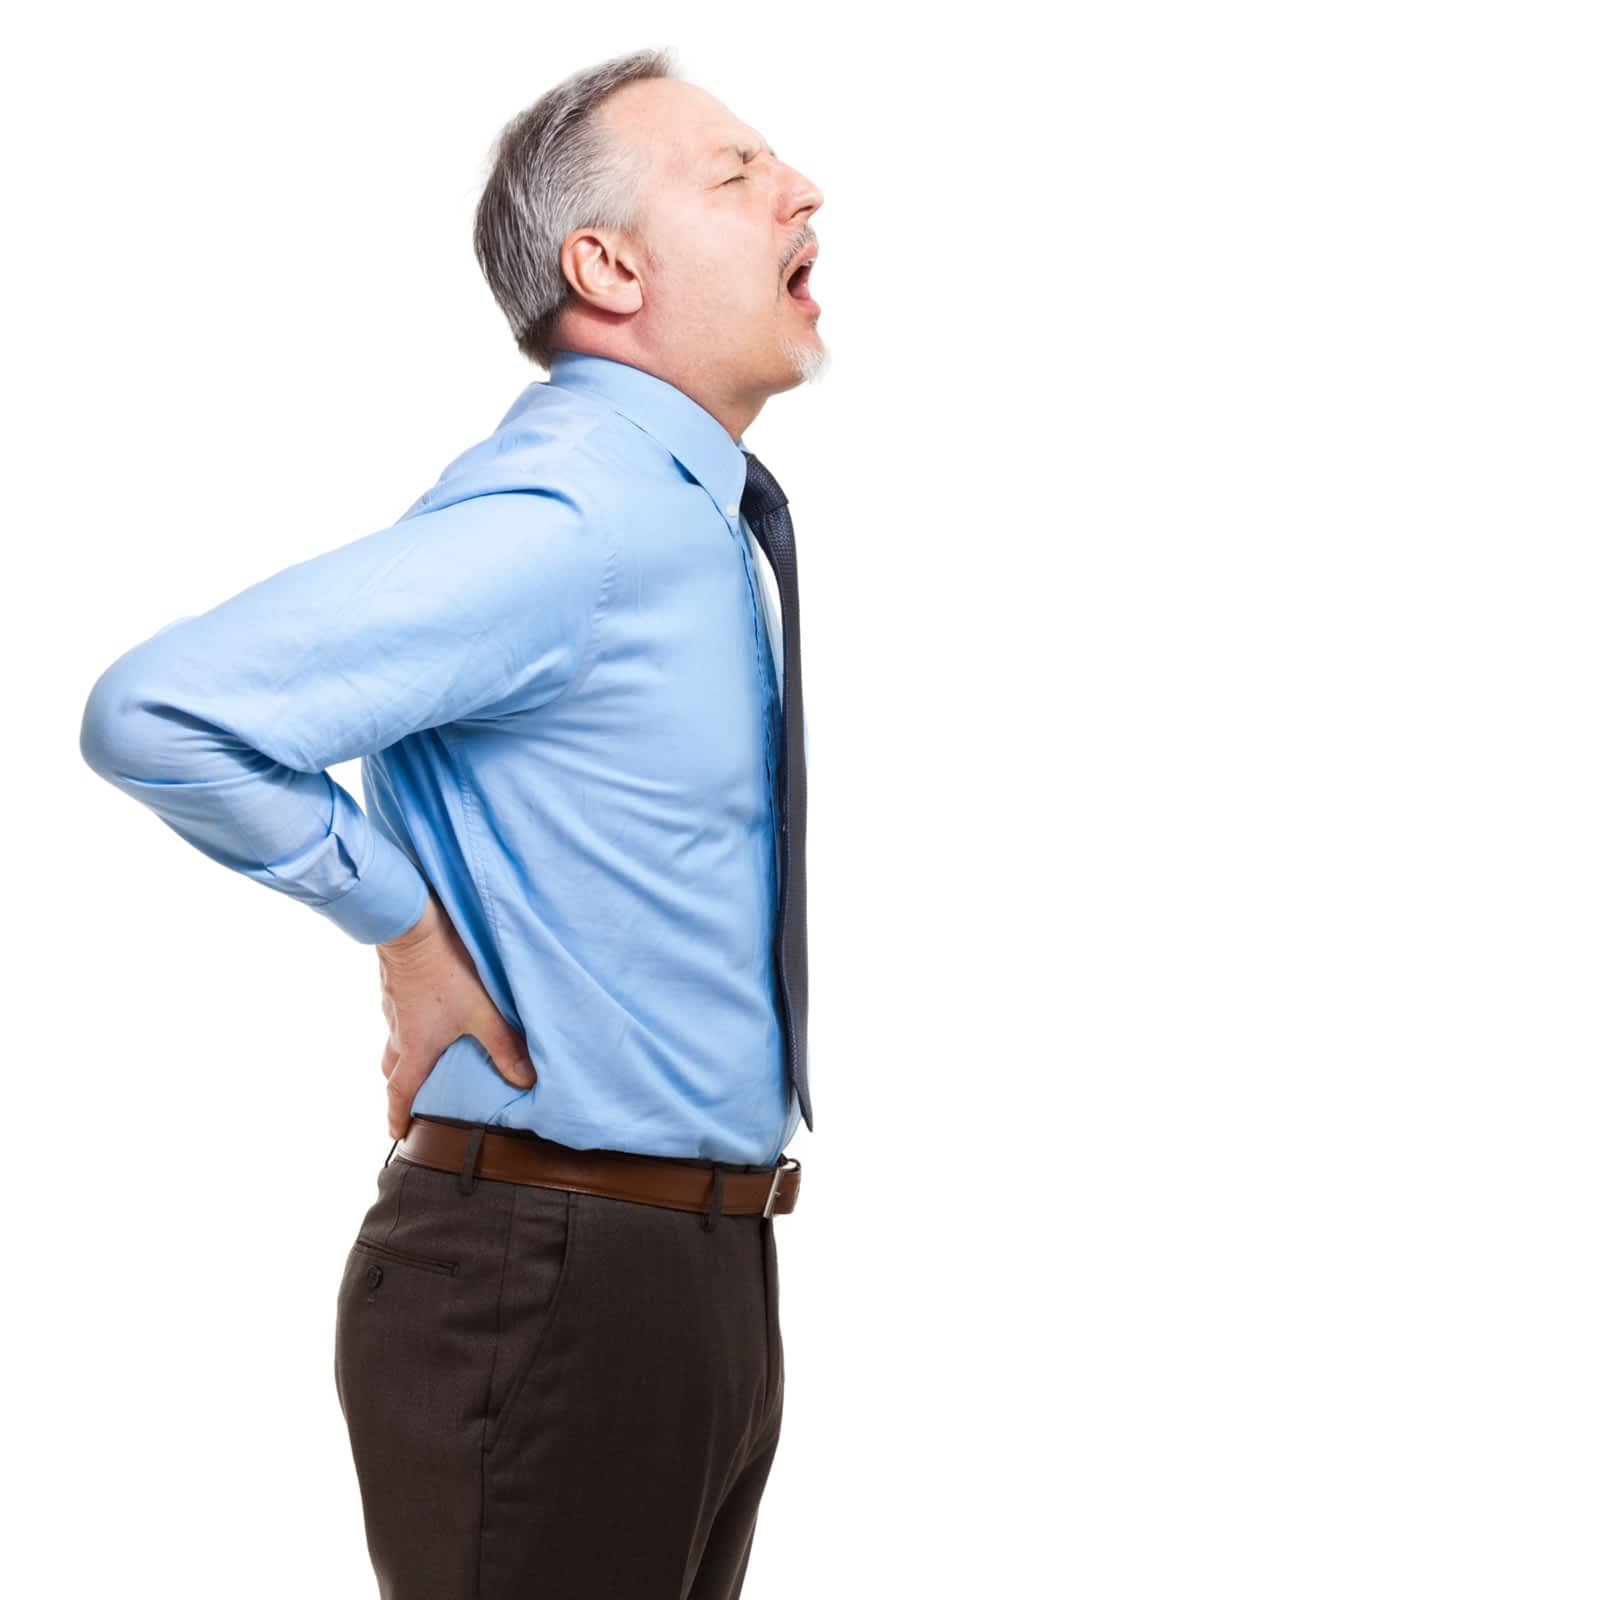 The length of time you have suffered from chronic back pain does not determine how long it will take to fix it